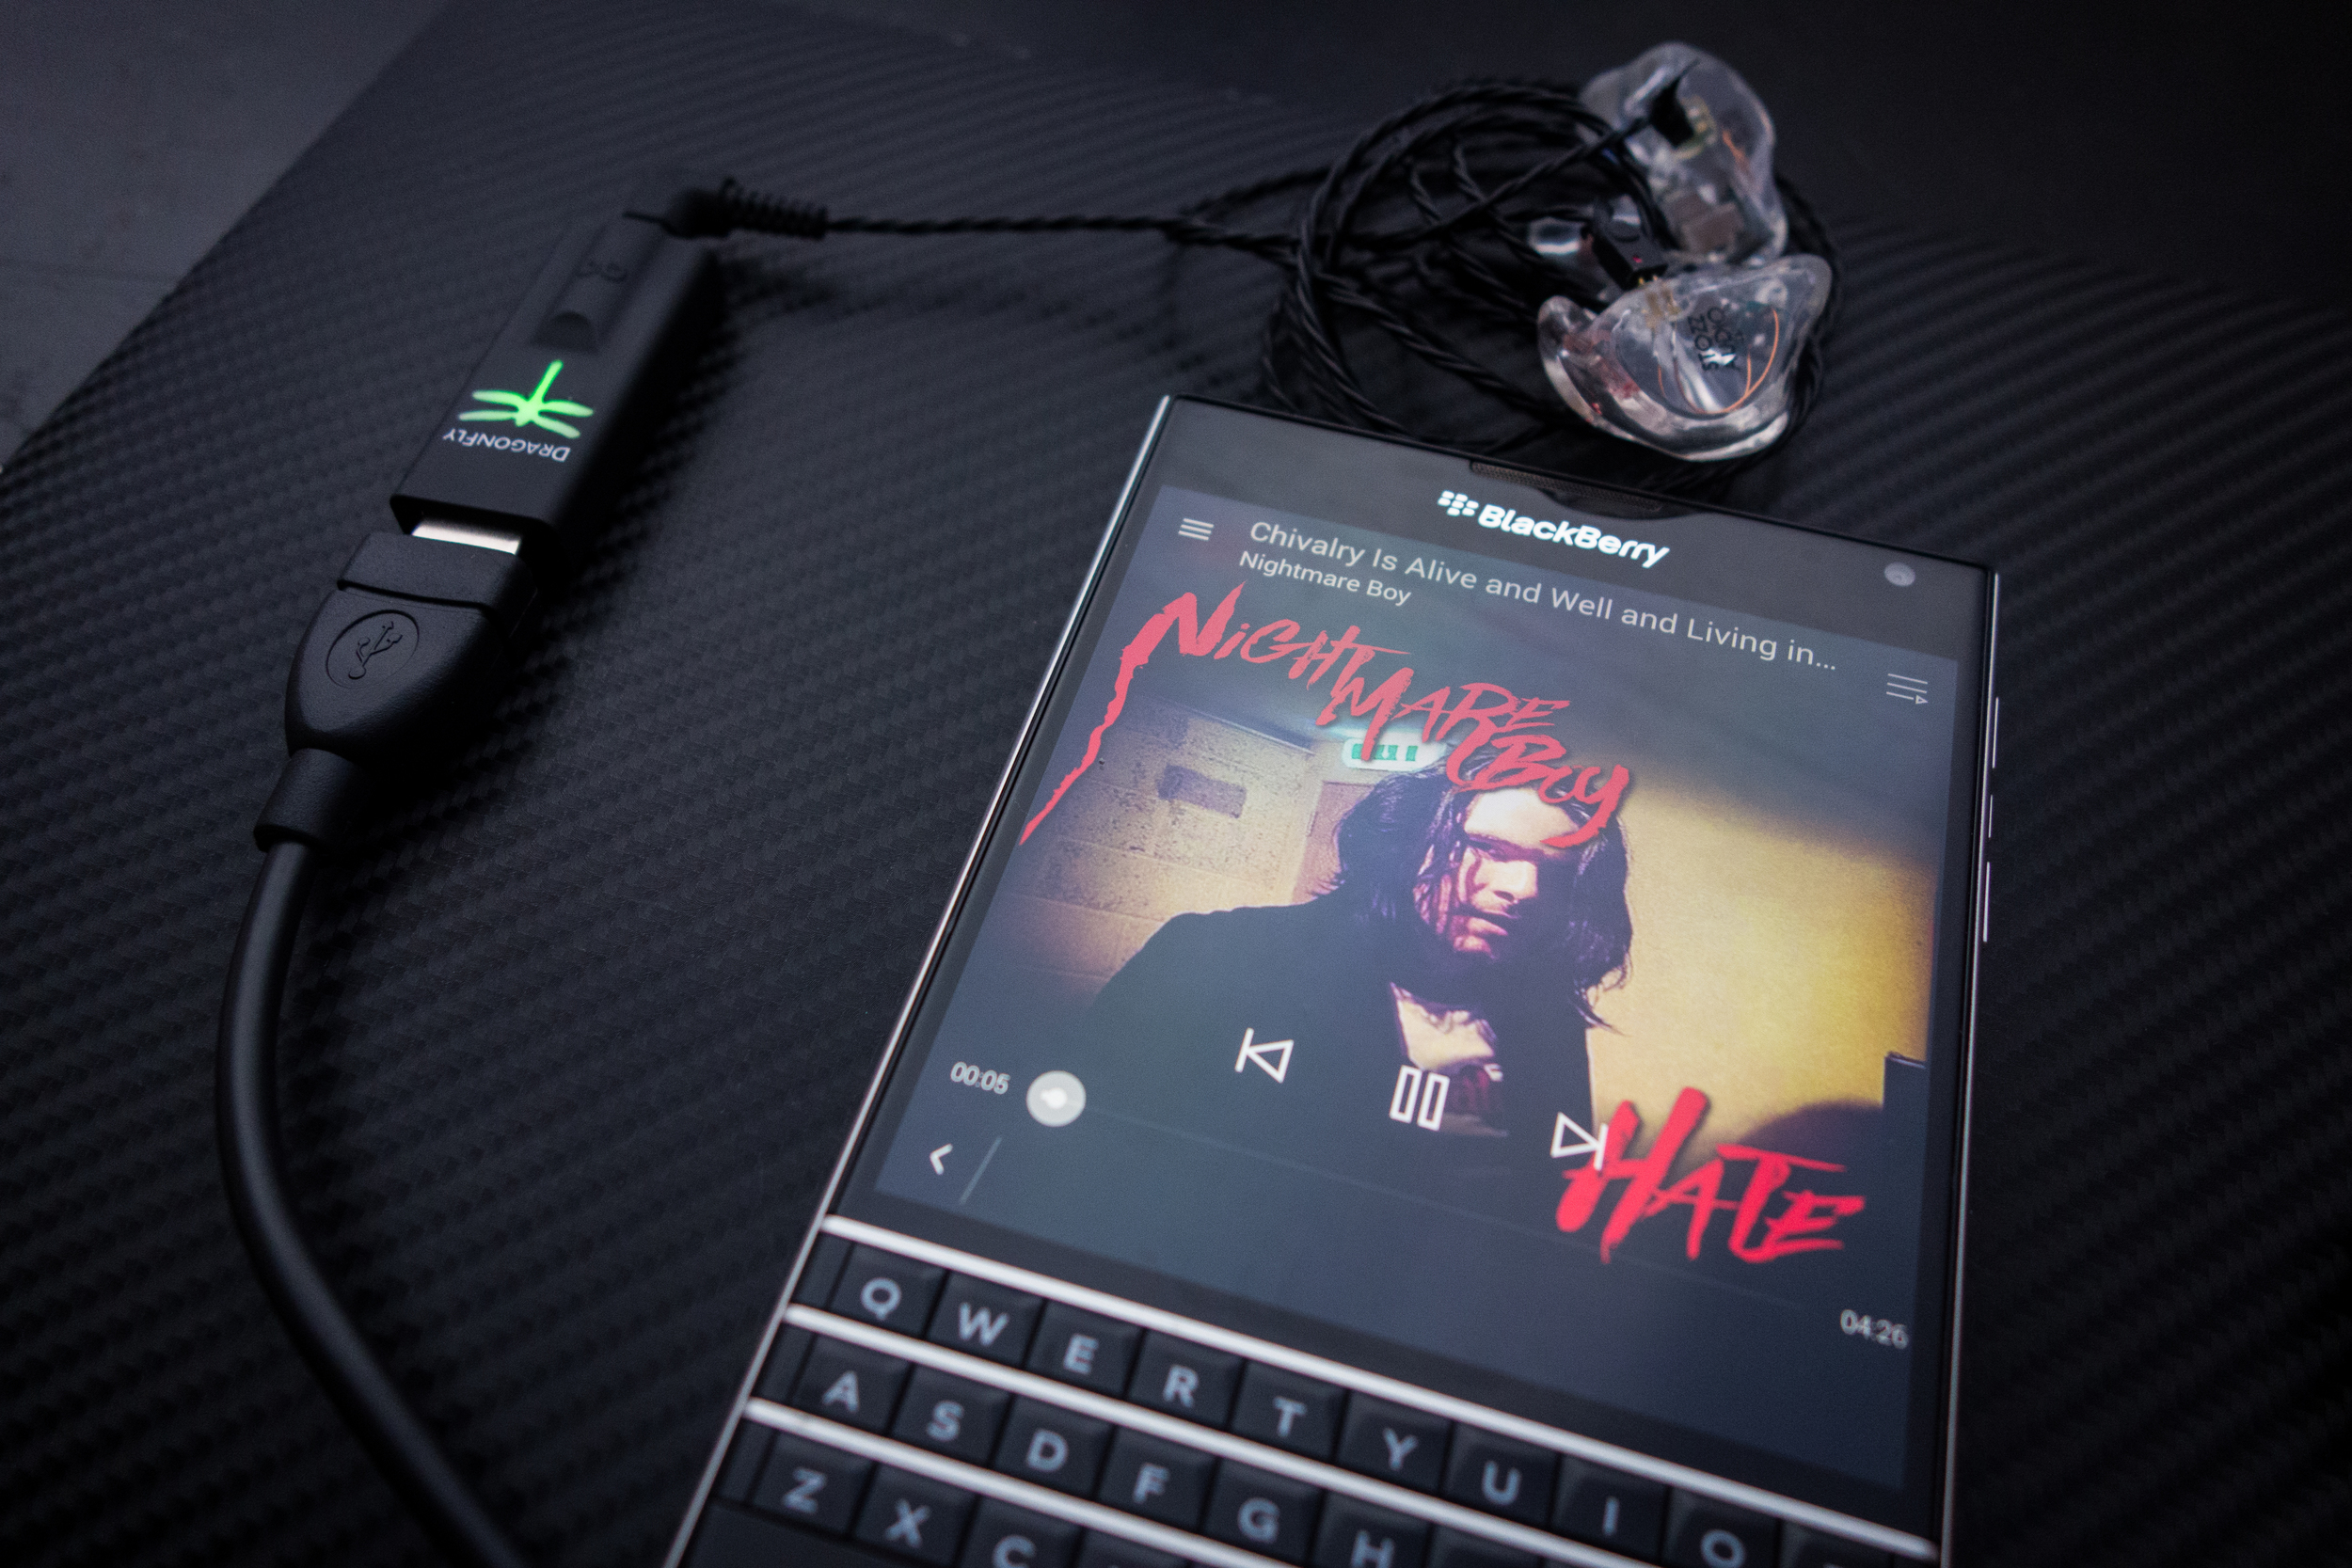 Audioquest Dragonfly with Blackberry Passport - Light comes on... no onehome..not working.